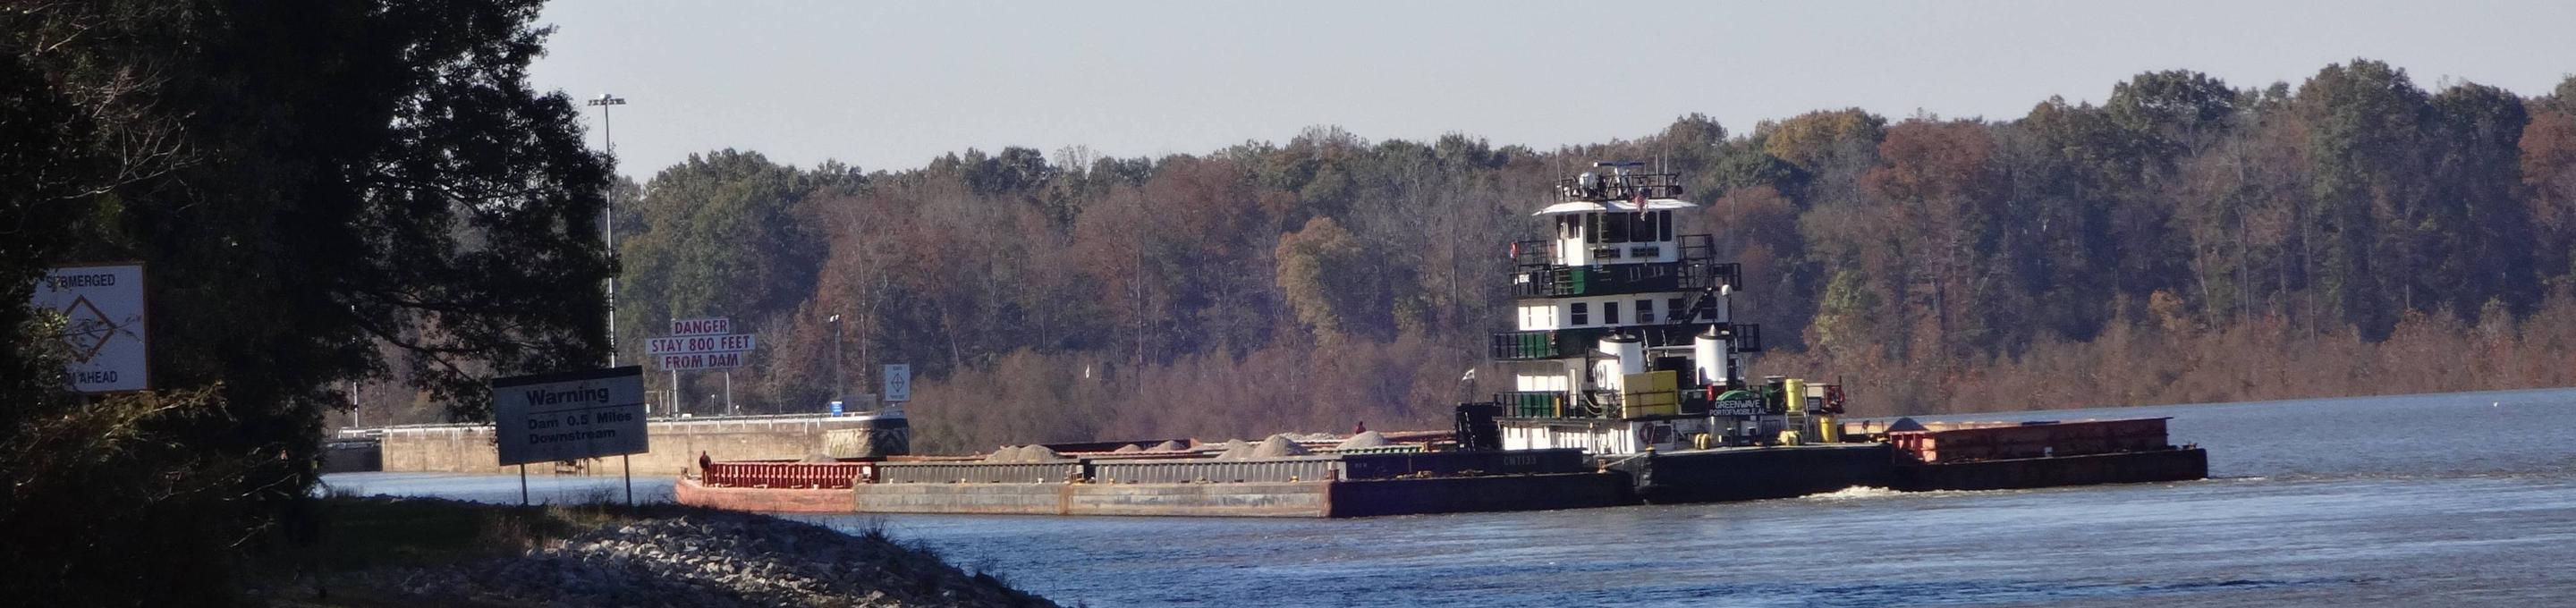 Barge traffic on the Tombigbee River.Barge